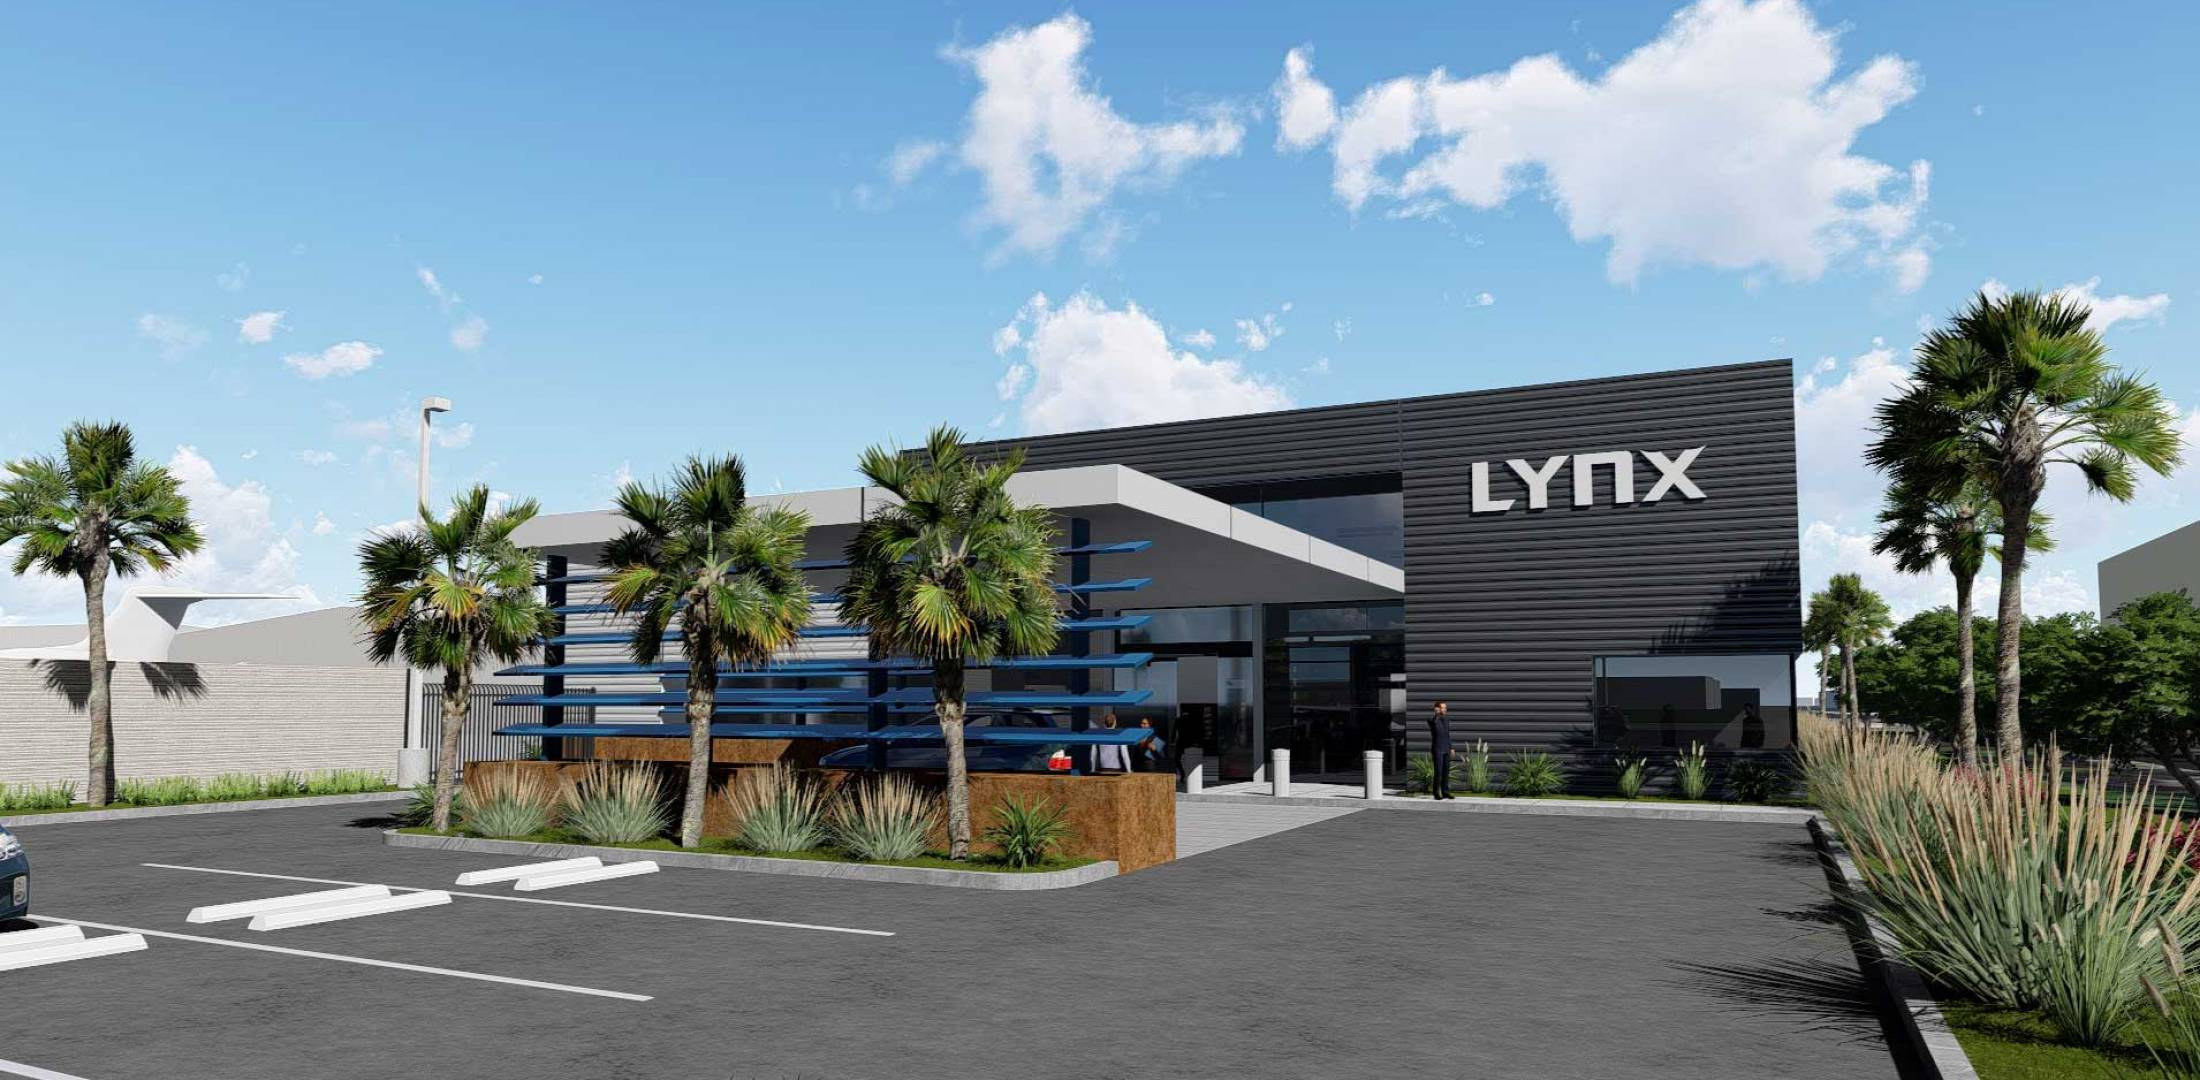 Artist rendering of the new Lynx FBO terminal at FXE